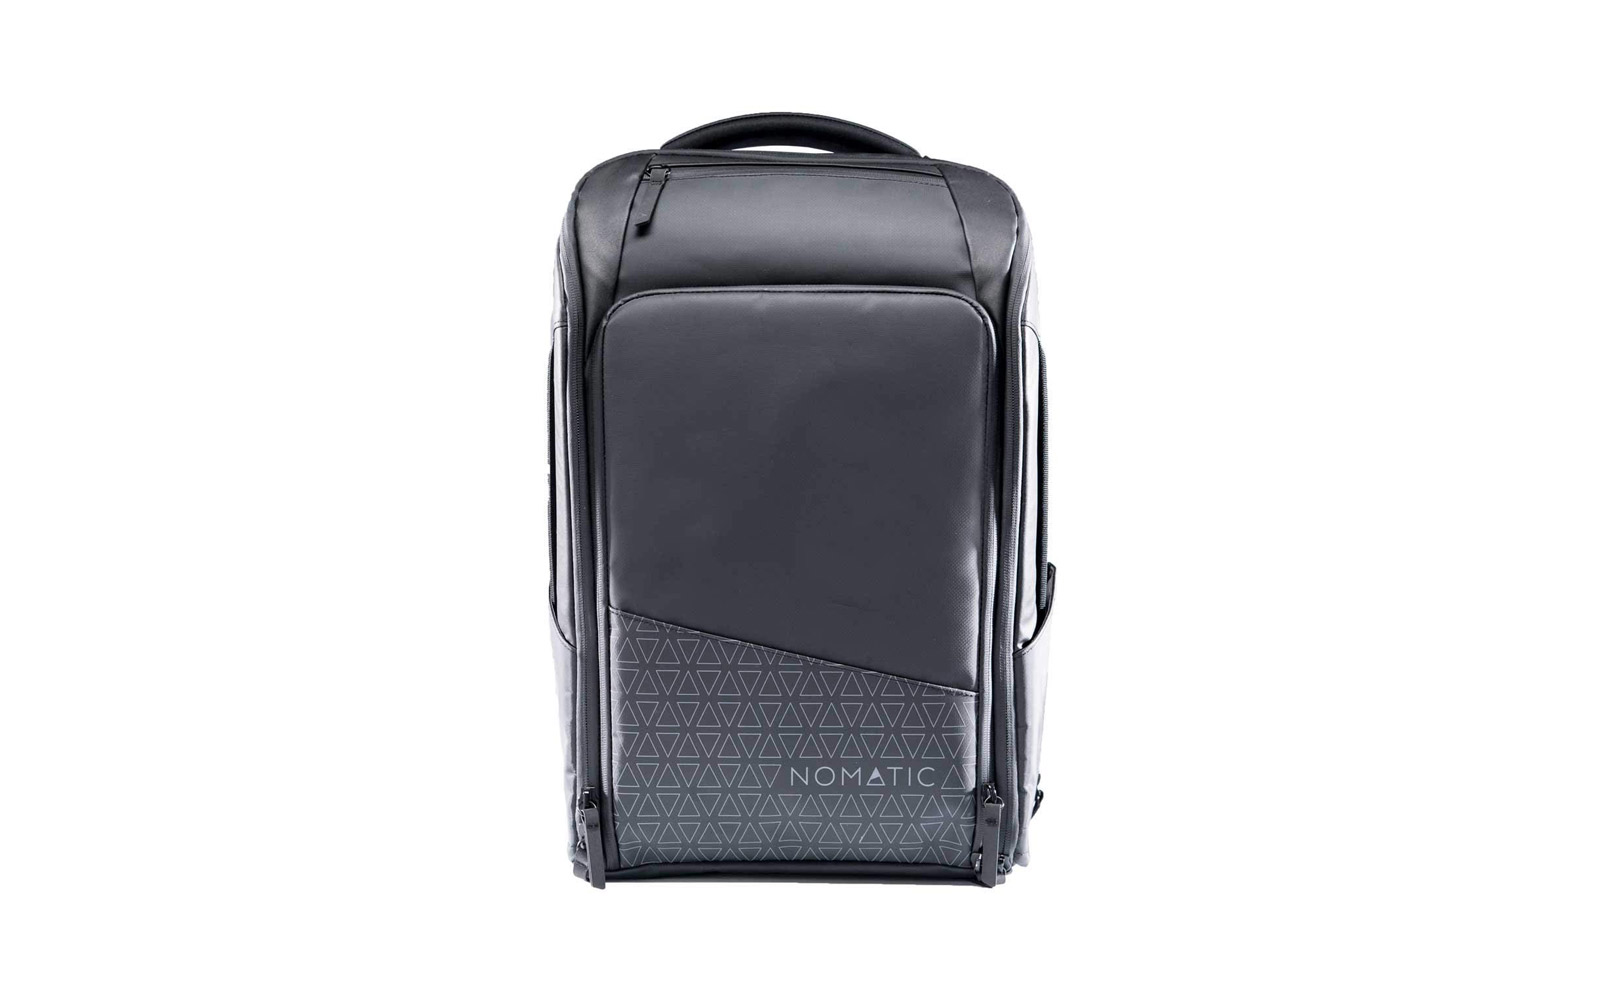 The Best Laptop Backpacks For Travel According To Frequent Fliers